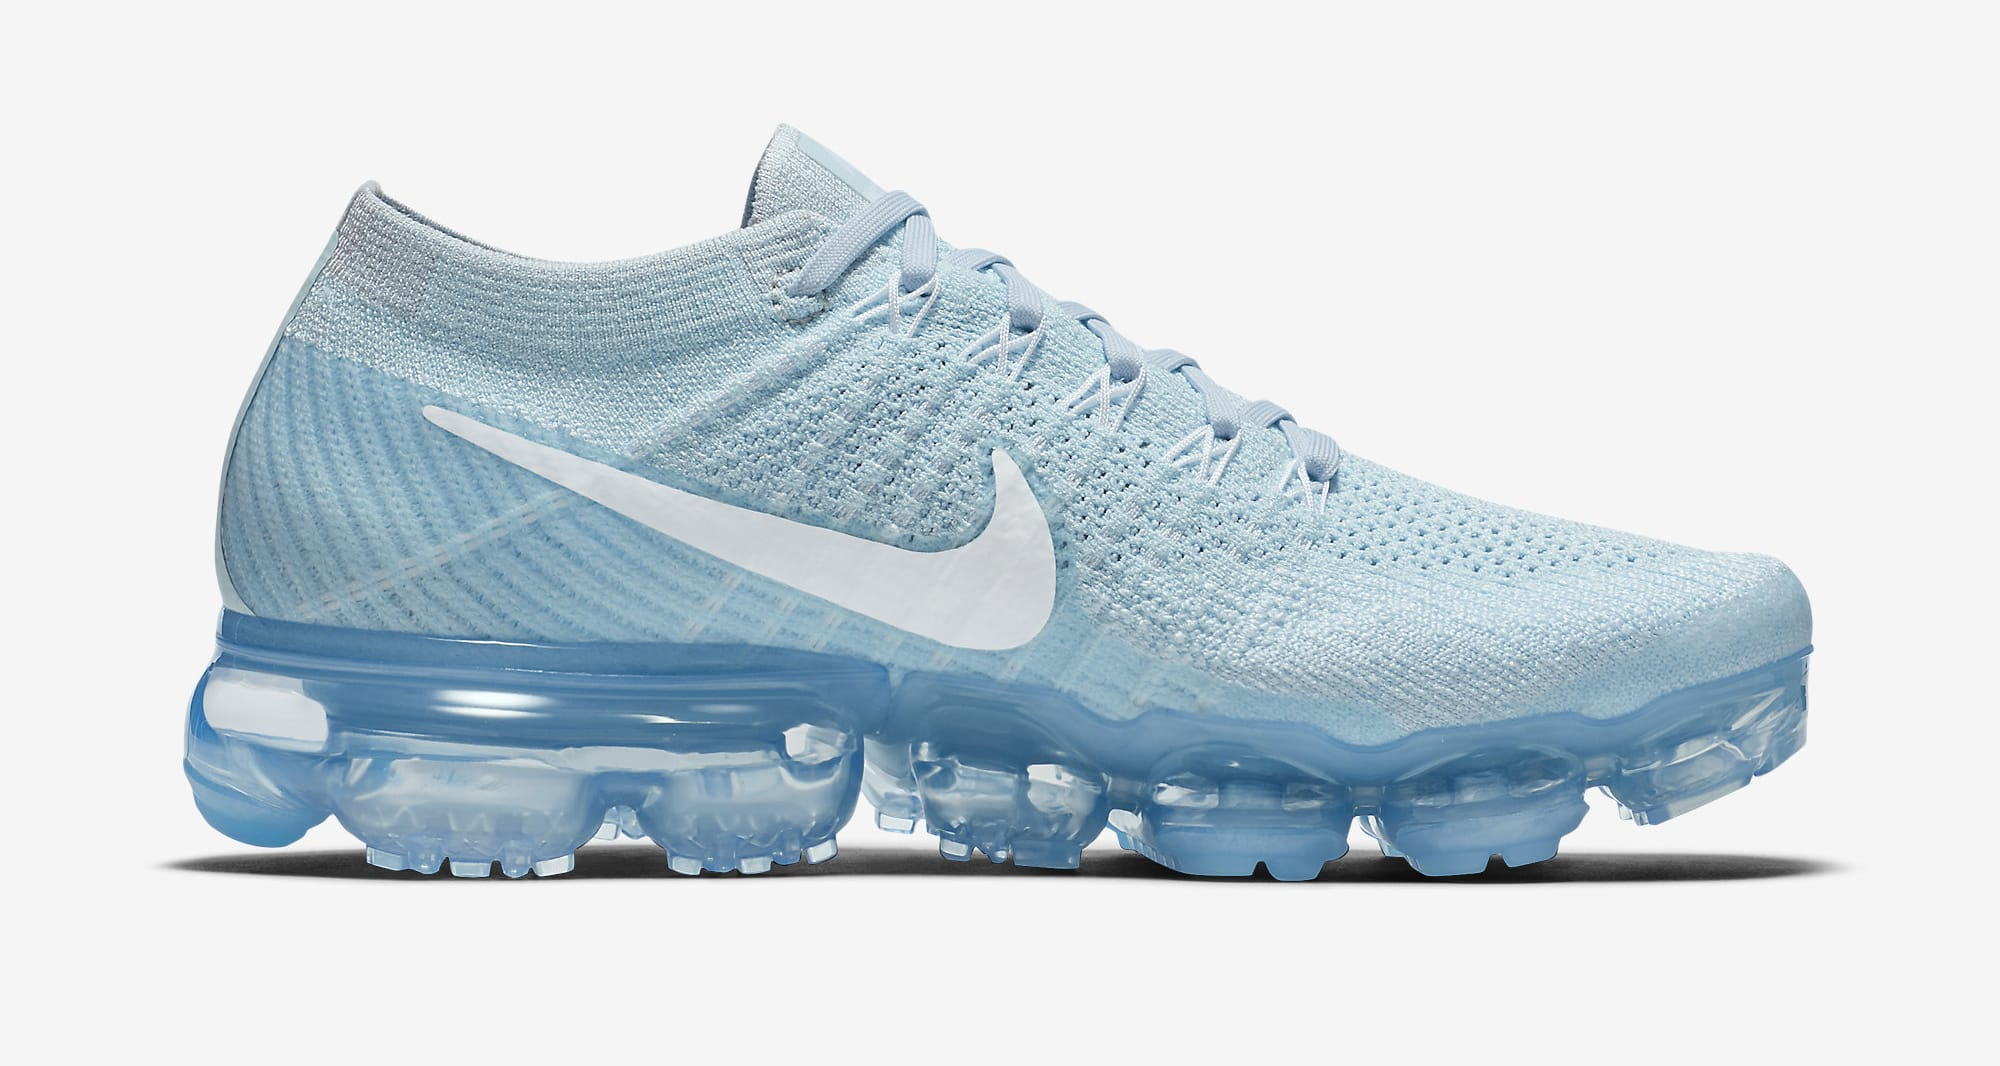 new product 4611f 53d8f Buy Nike Cheap Air Vapormax Flyknit Running Shoes Sale Online 2018